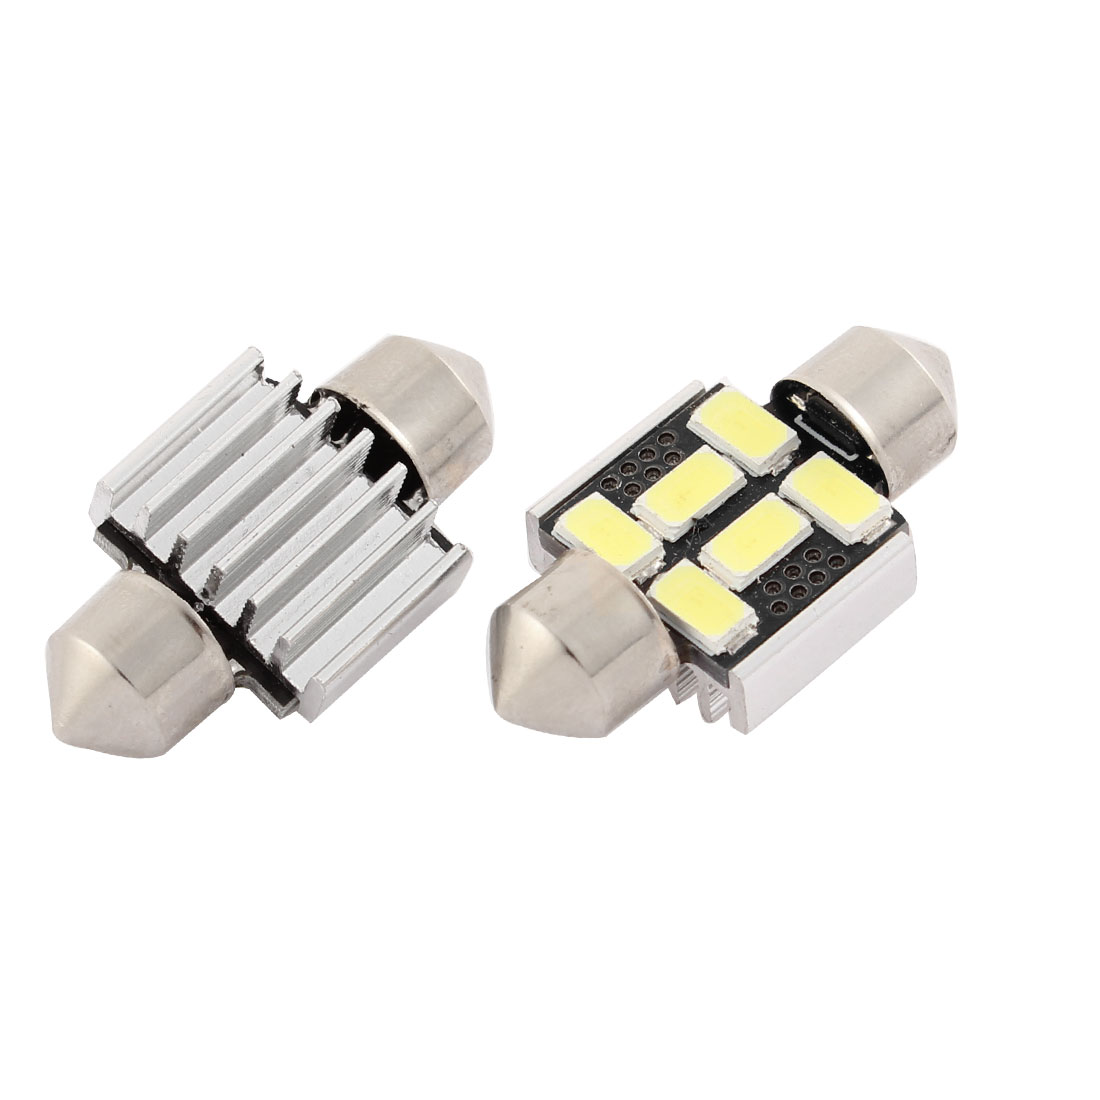 2 Pcs Car 31mm 5630 6 SMD Festoon LED Light White Dome Map Bulb Lamp DC 12V Interior